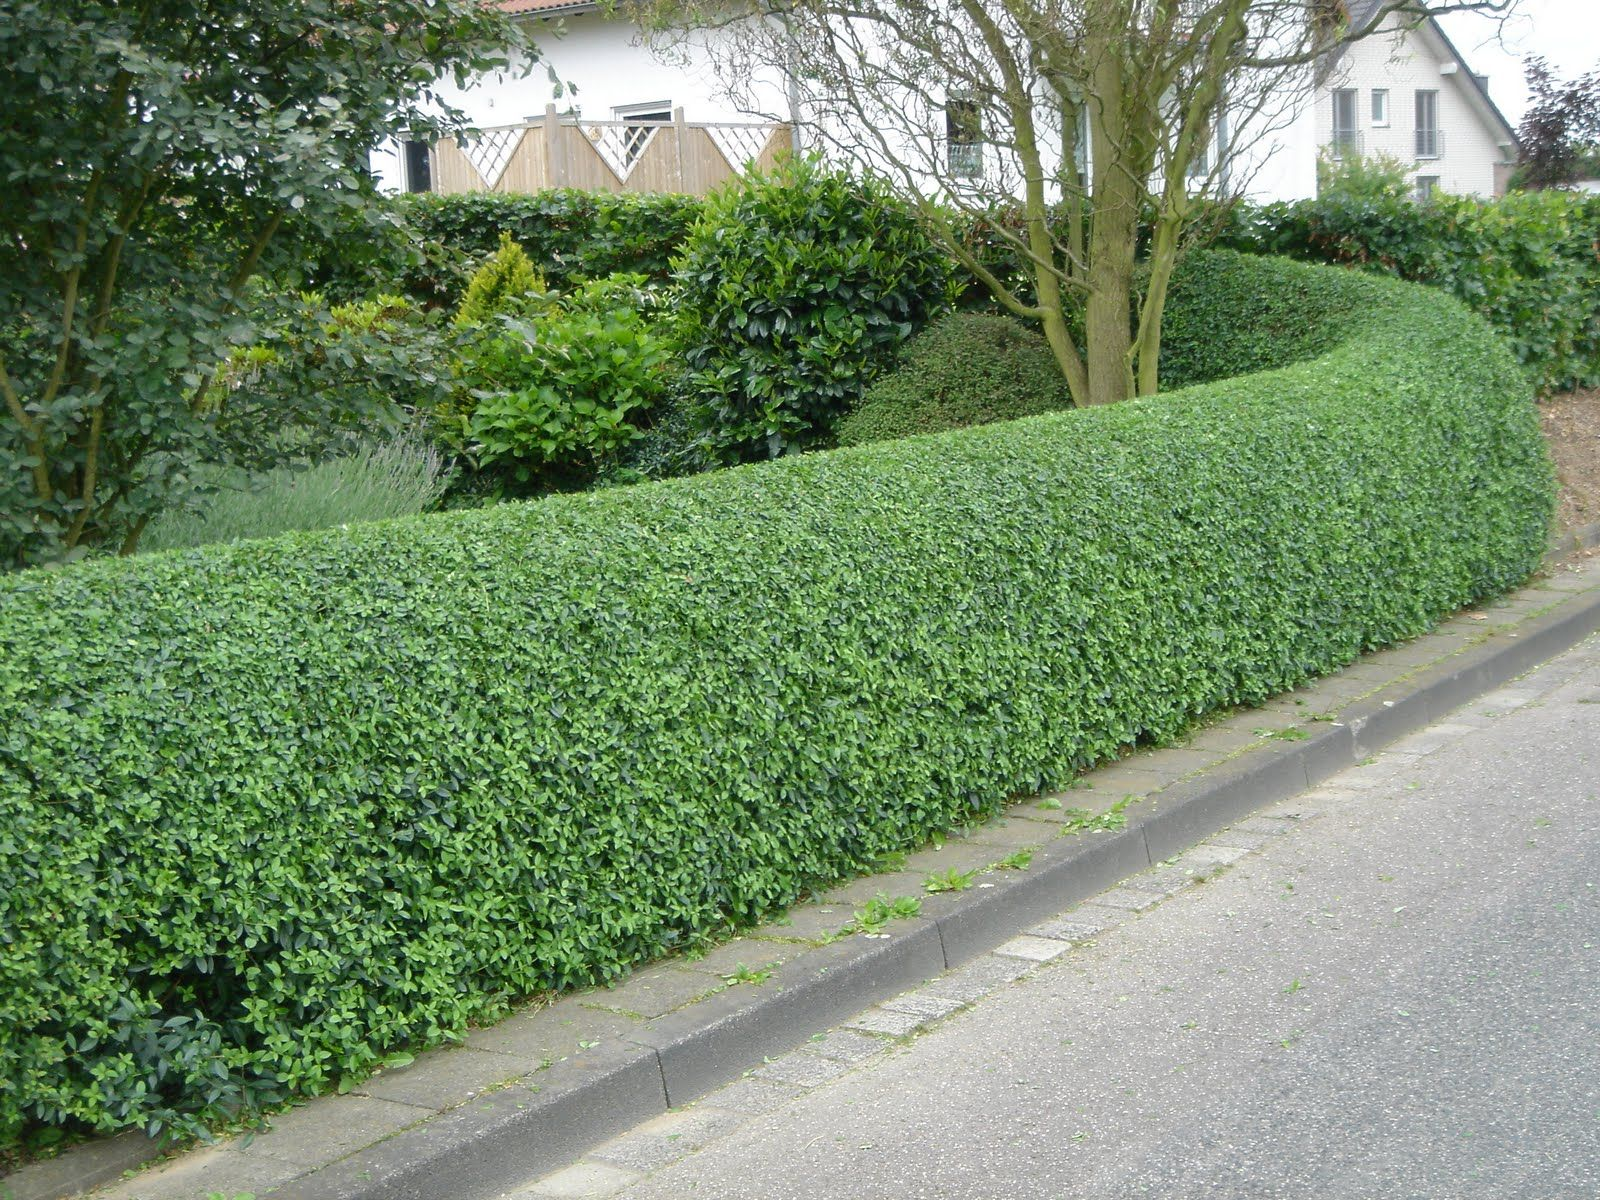 Escallonia Basically Hedge That Can Be Pruned Into Any Shape And Is So Dense Leafy It Provides A Good Backdrop For The Rest Of Garden